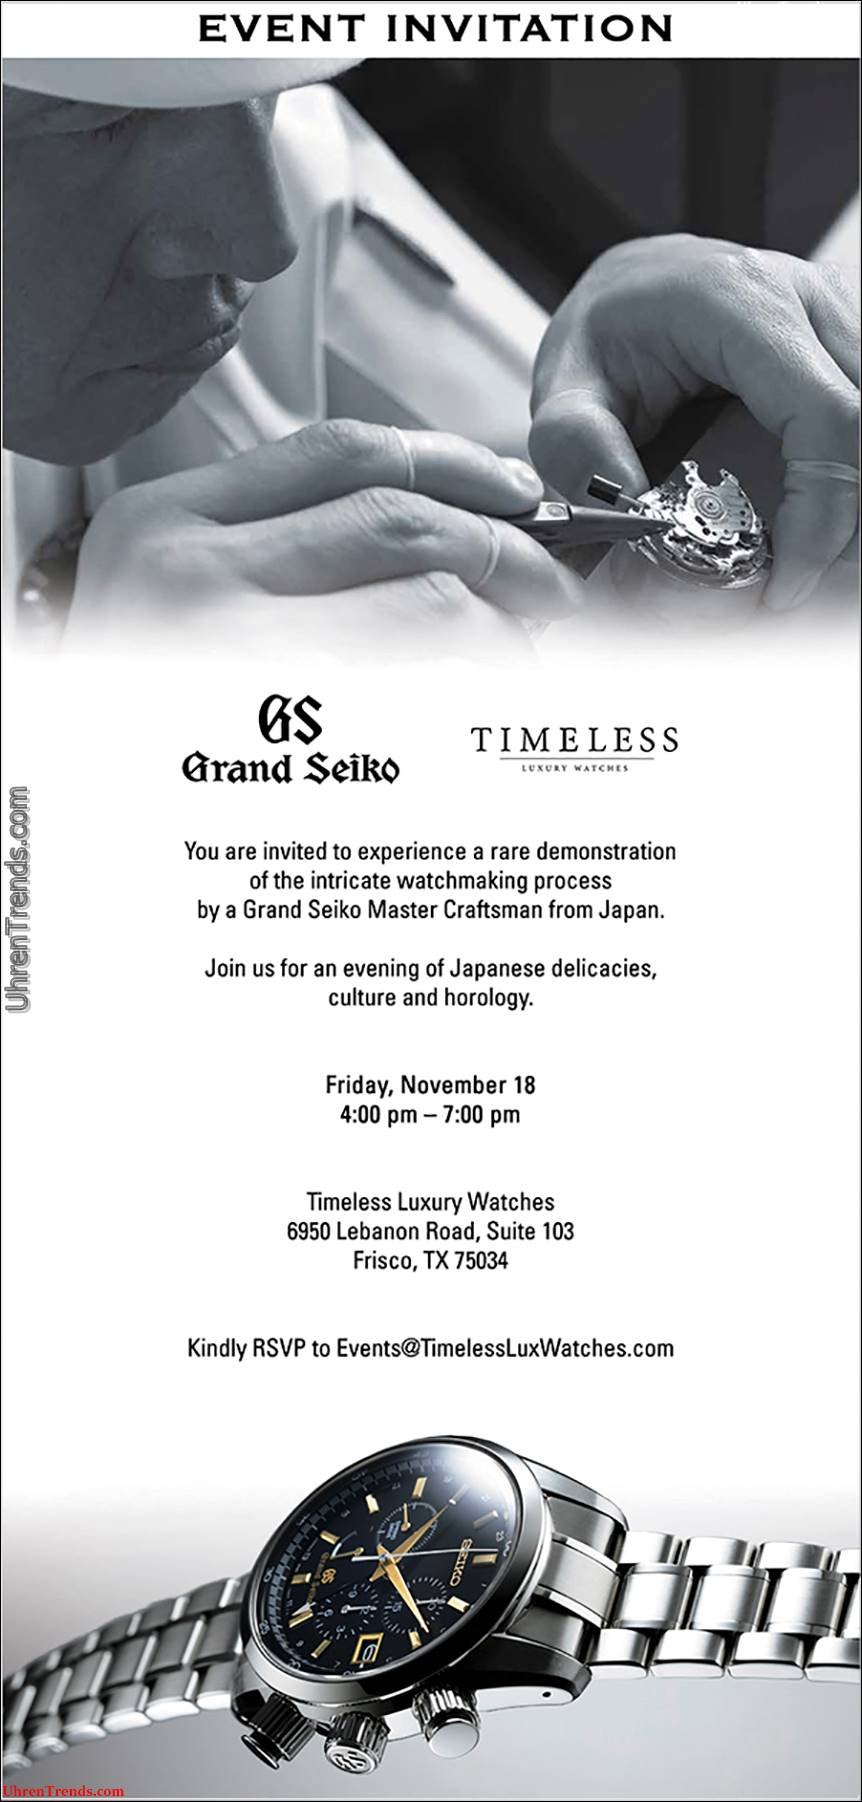 Grand Seiko Roadshow bei zeitlosen Luxusuhren in Texas am 18. November 2016